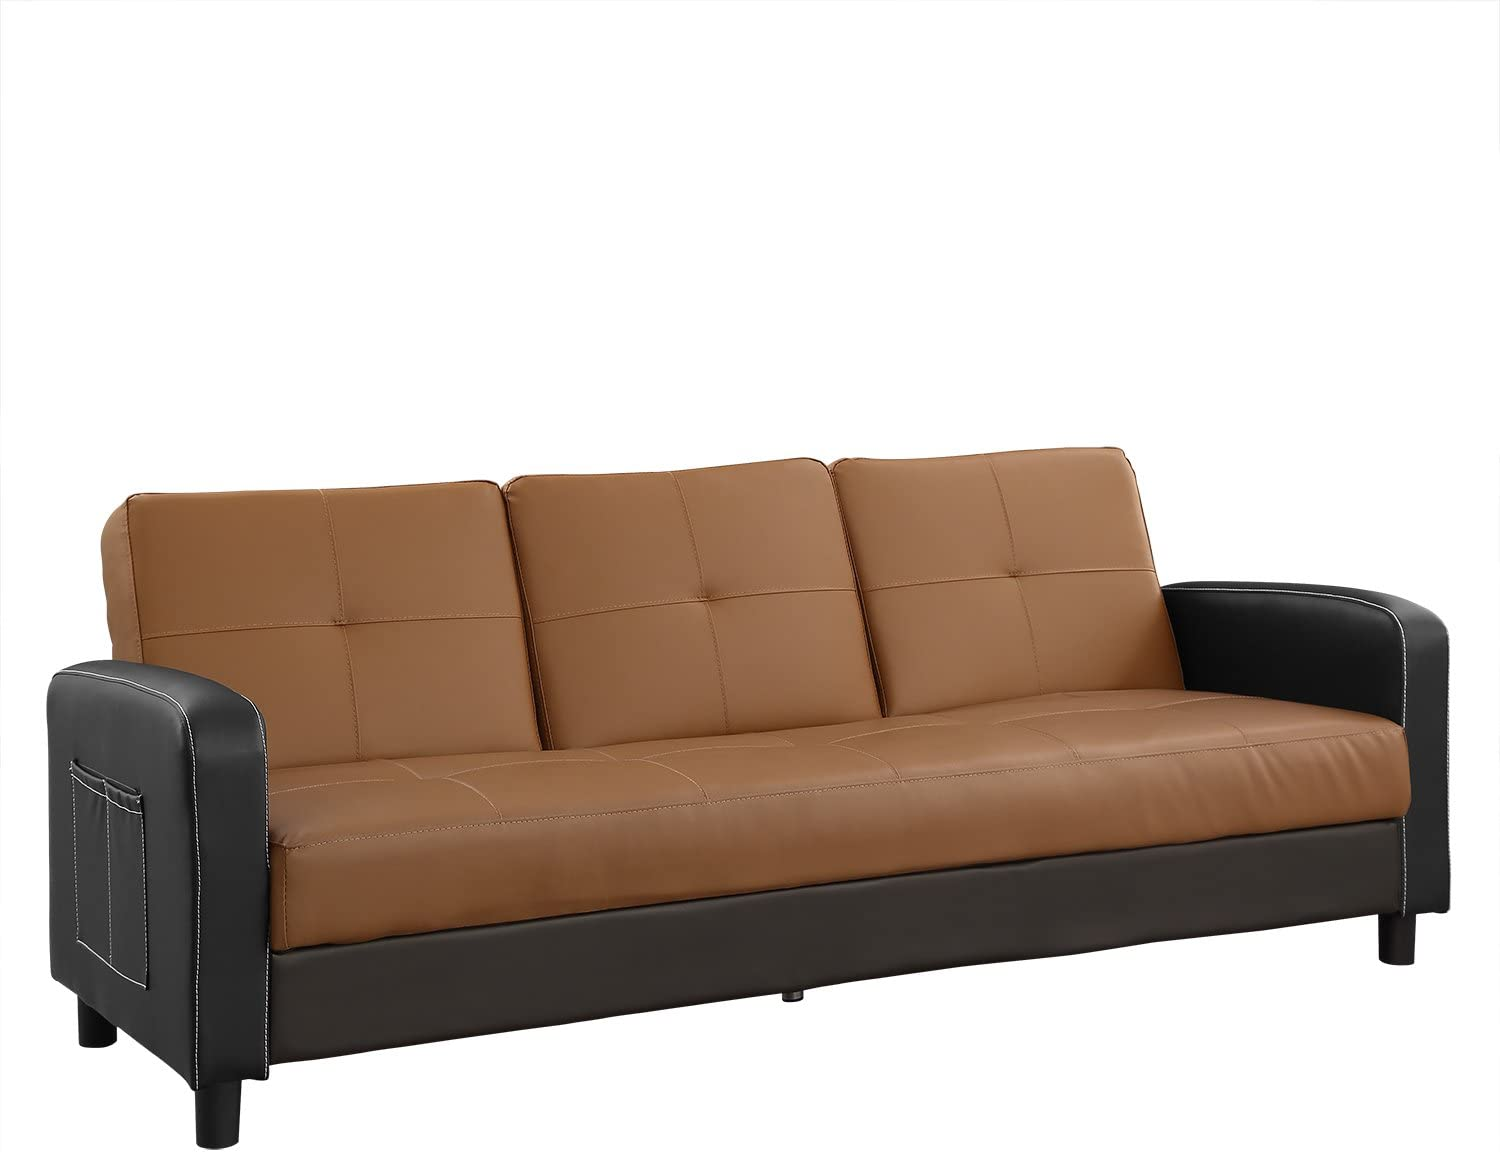 Sofas w Padded 4 Seater Faux Leather Sofa beds